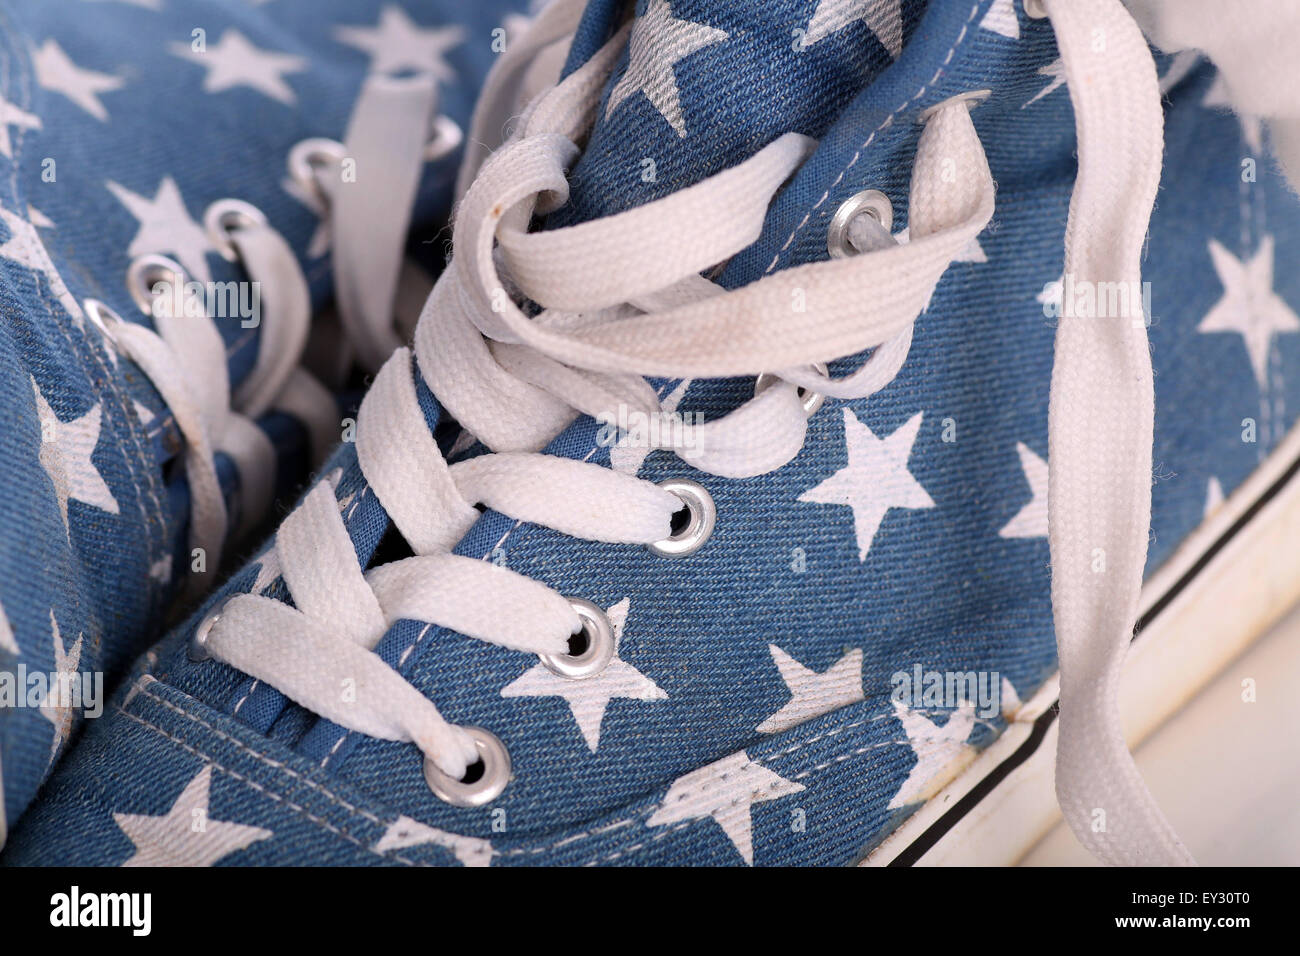 Fancy blue fake converse shoes or